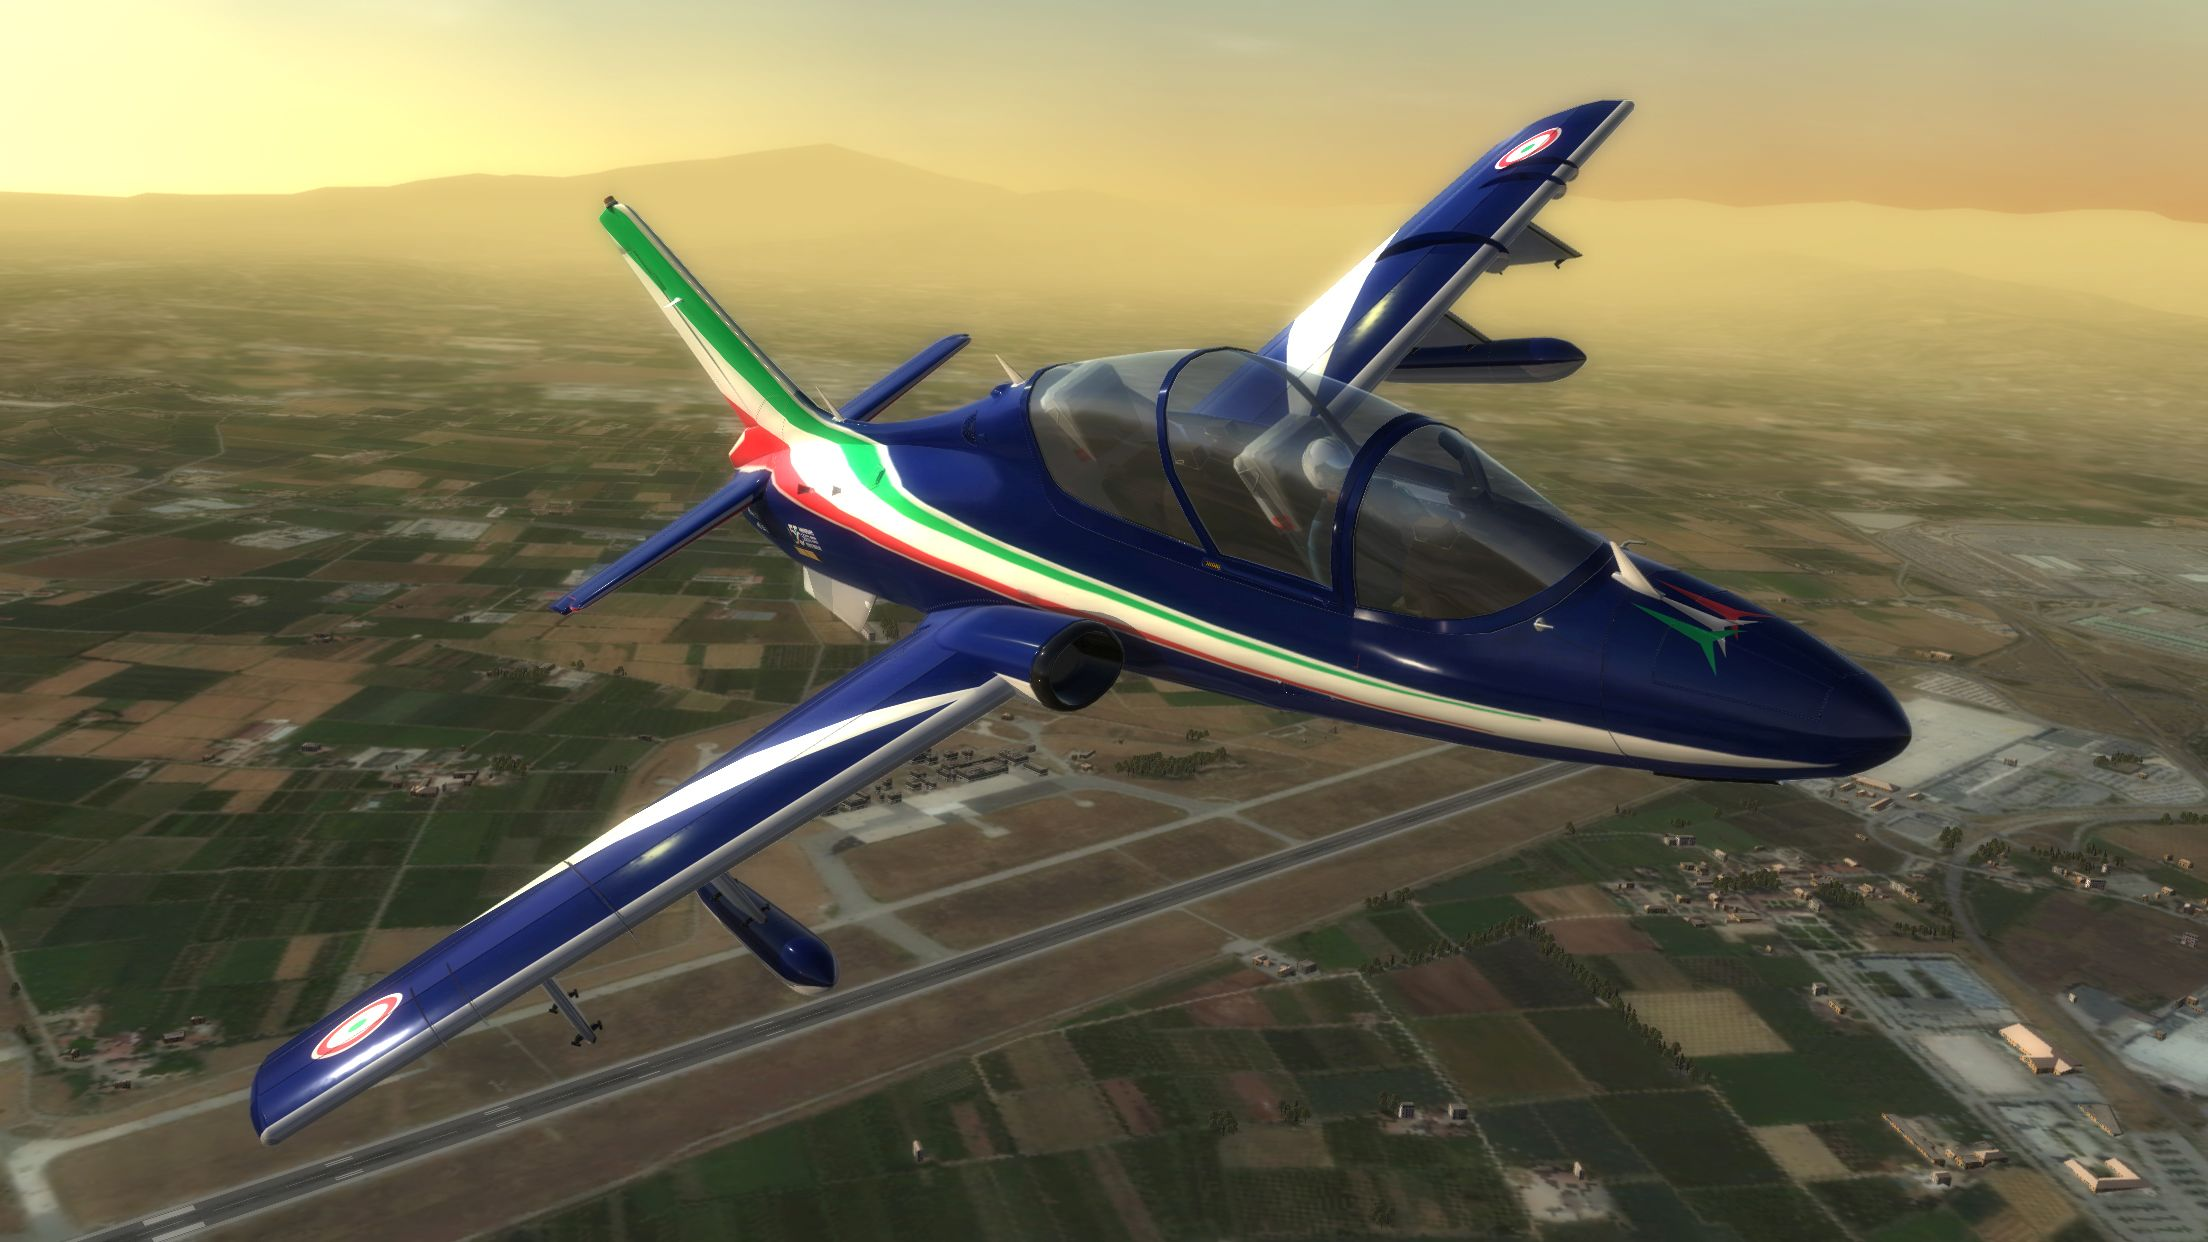 frecce-tricolori-flight-sim-pro_capturescreen__5_5-pollici-iphone6_2208x1242_20161014t125100699